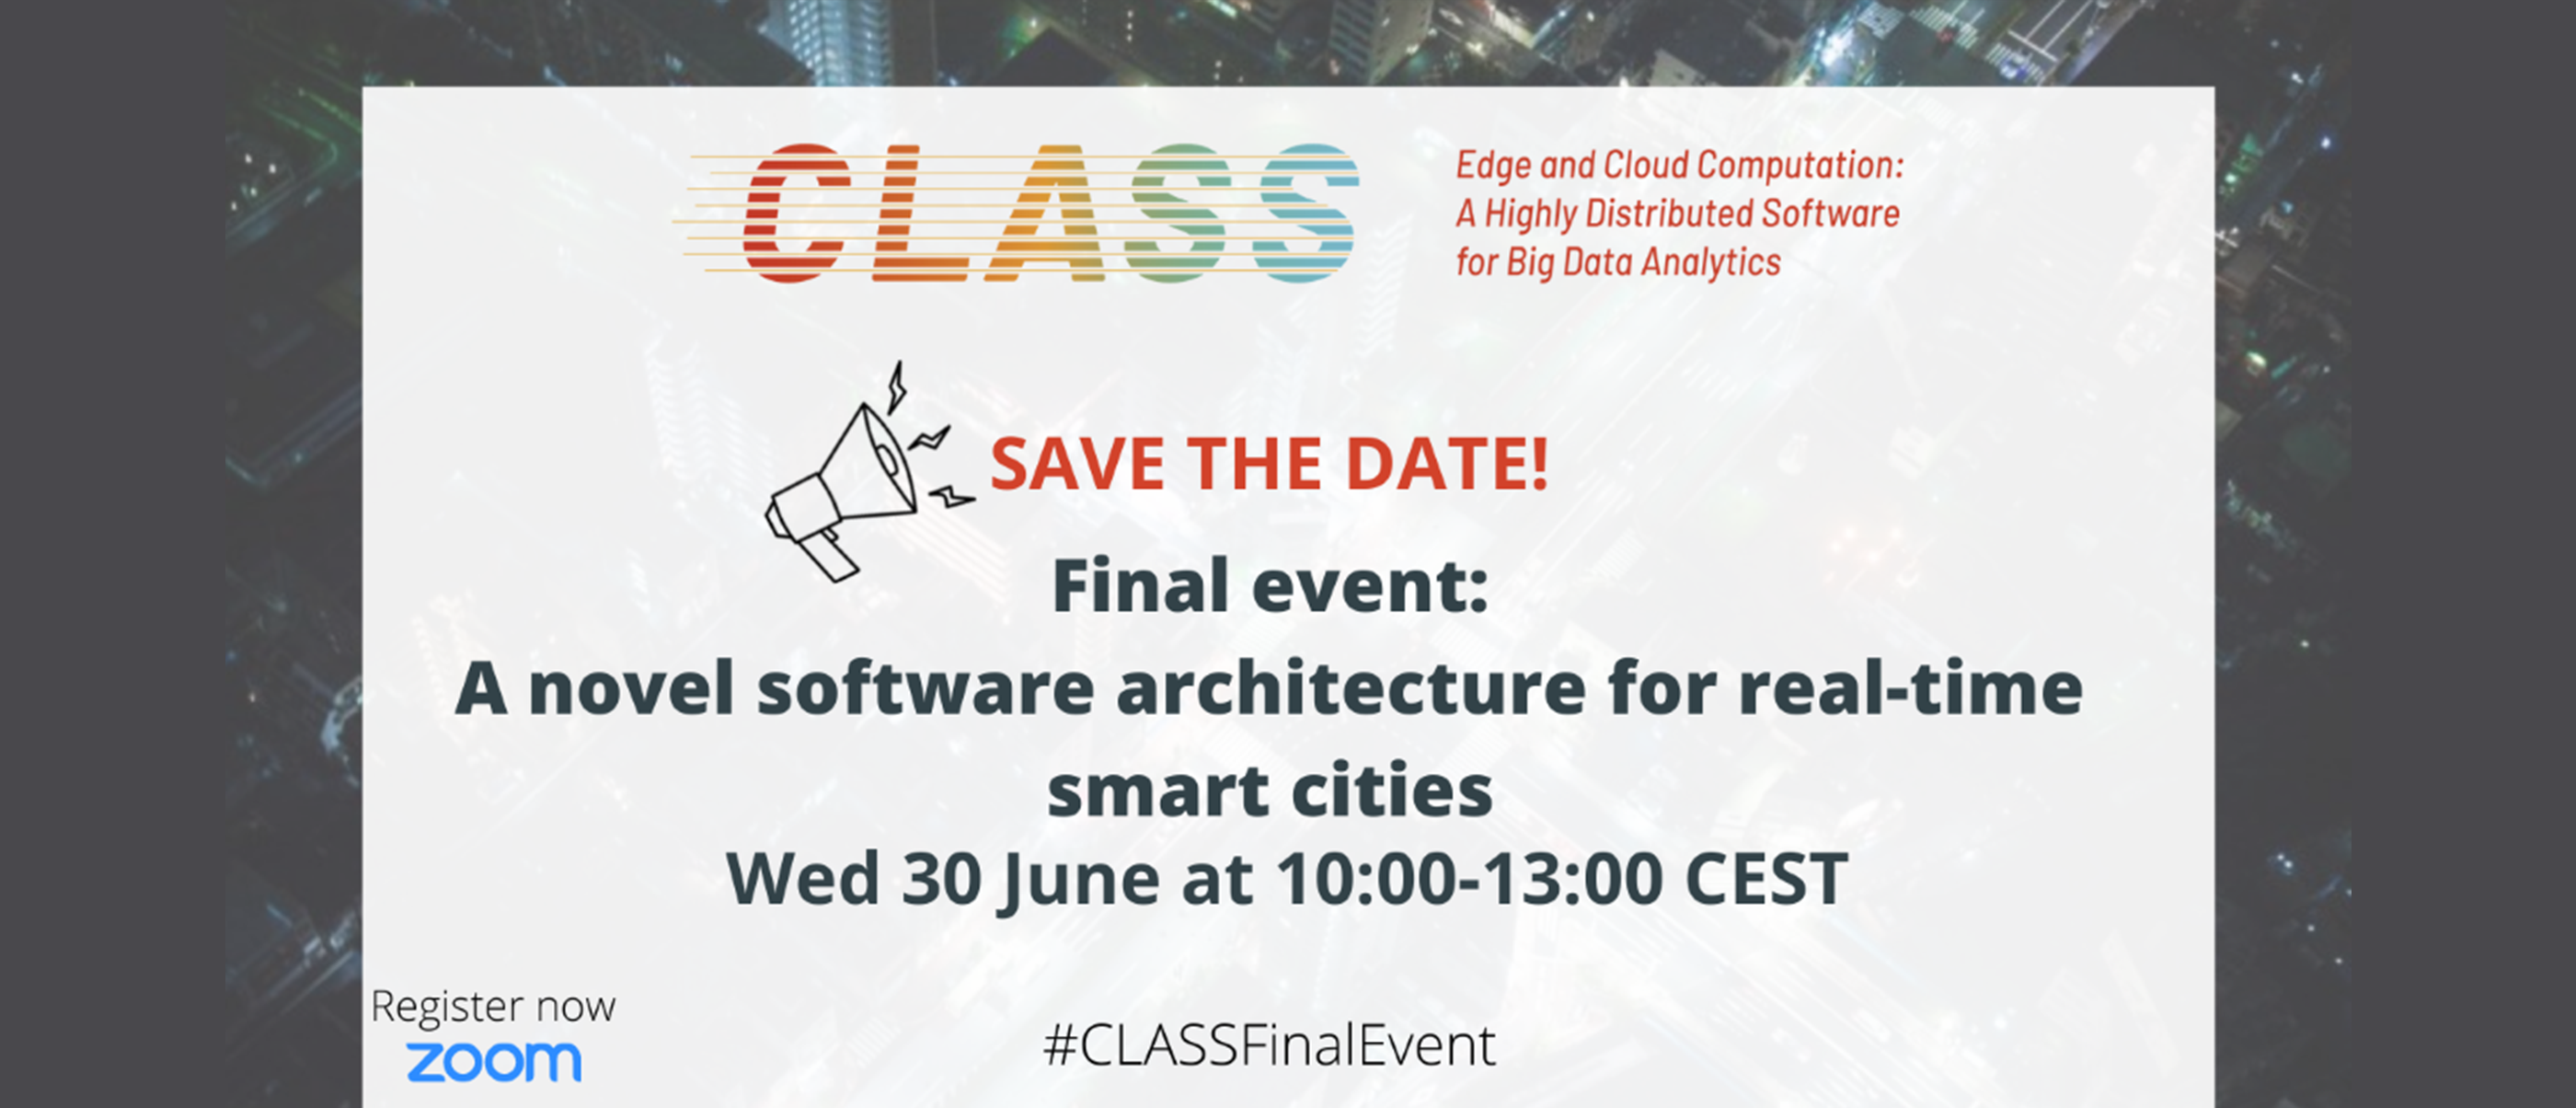 CLASS Final Event: A novel software architecture for real-time smart cities